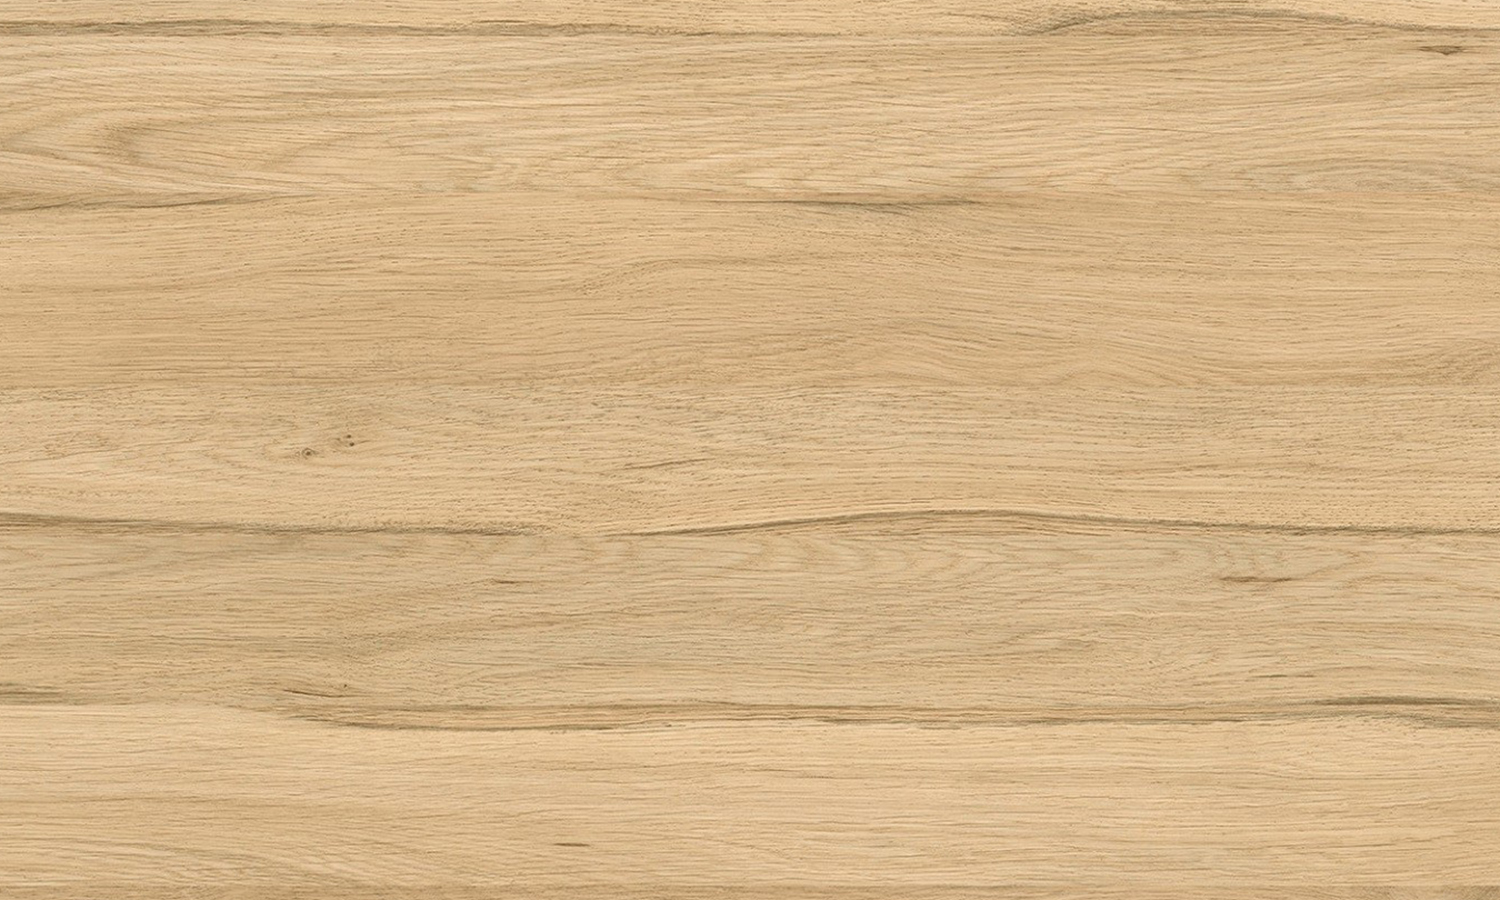 Synergii Worktop Pyla Oak 3000 x 900 x 38mm Square Laminate Edge